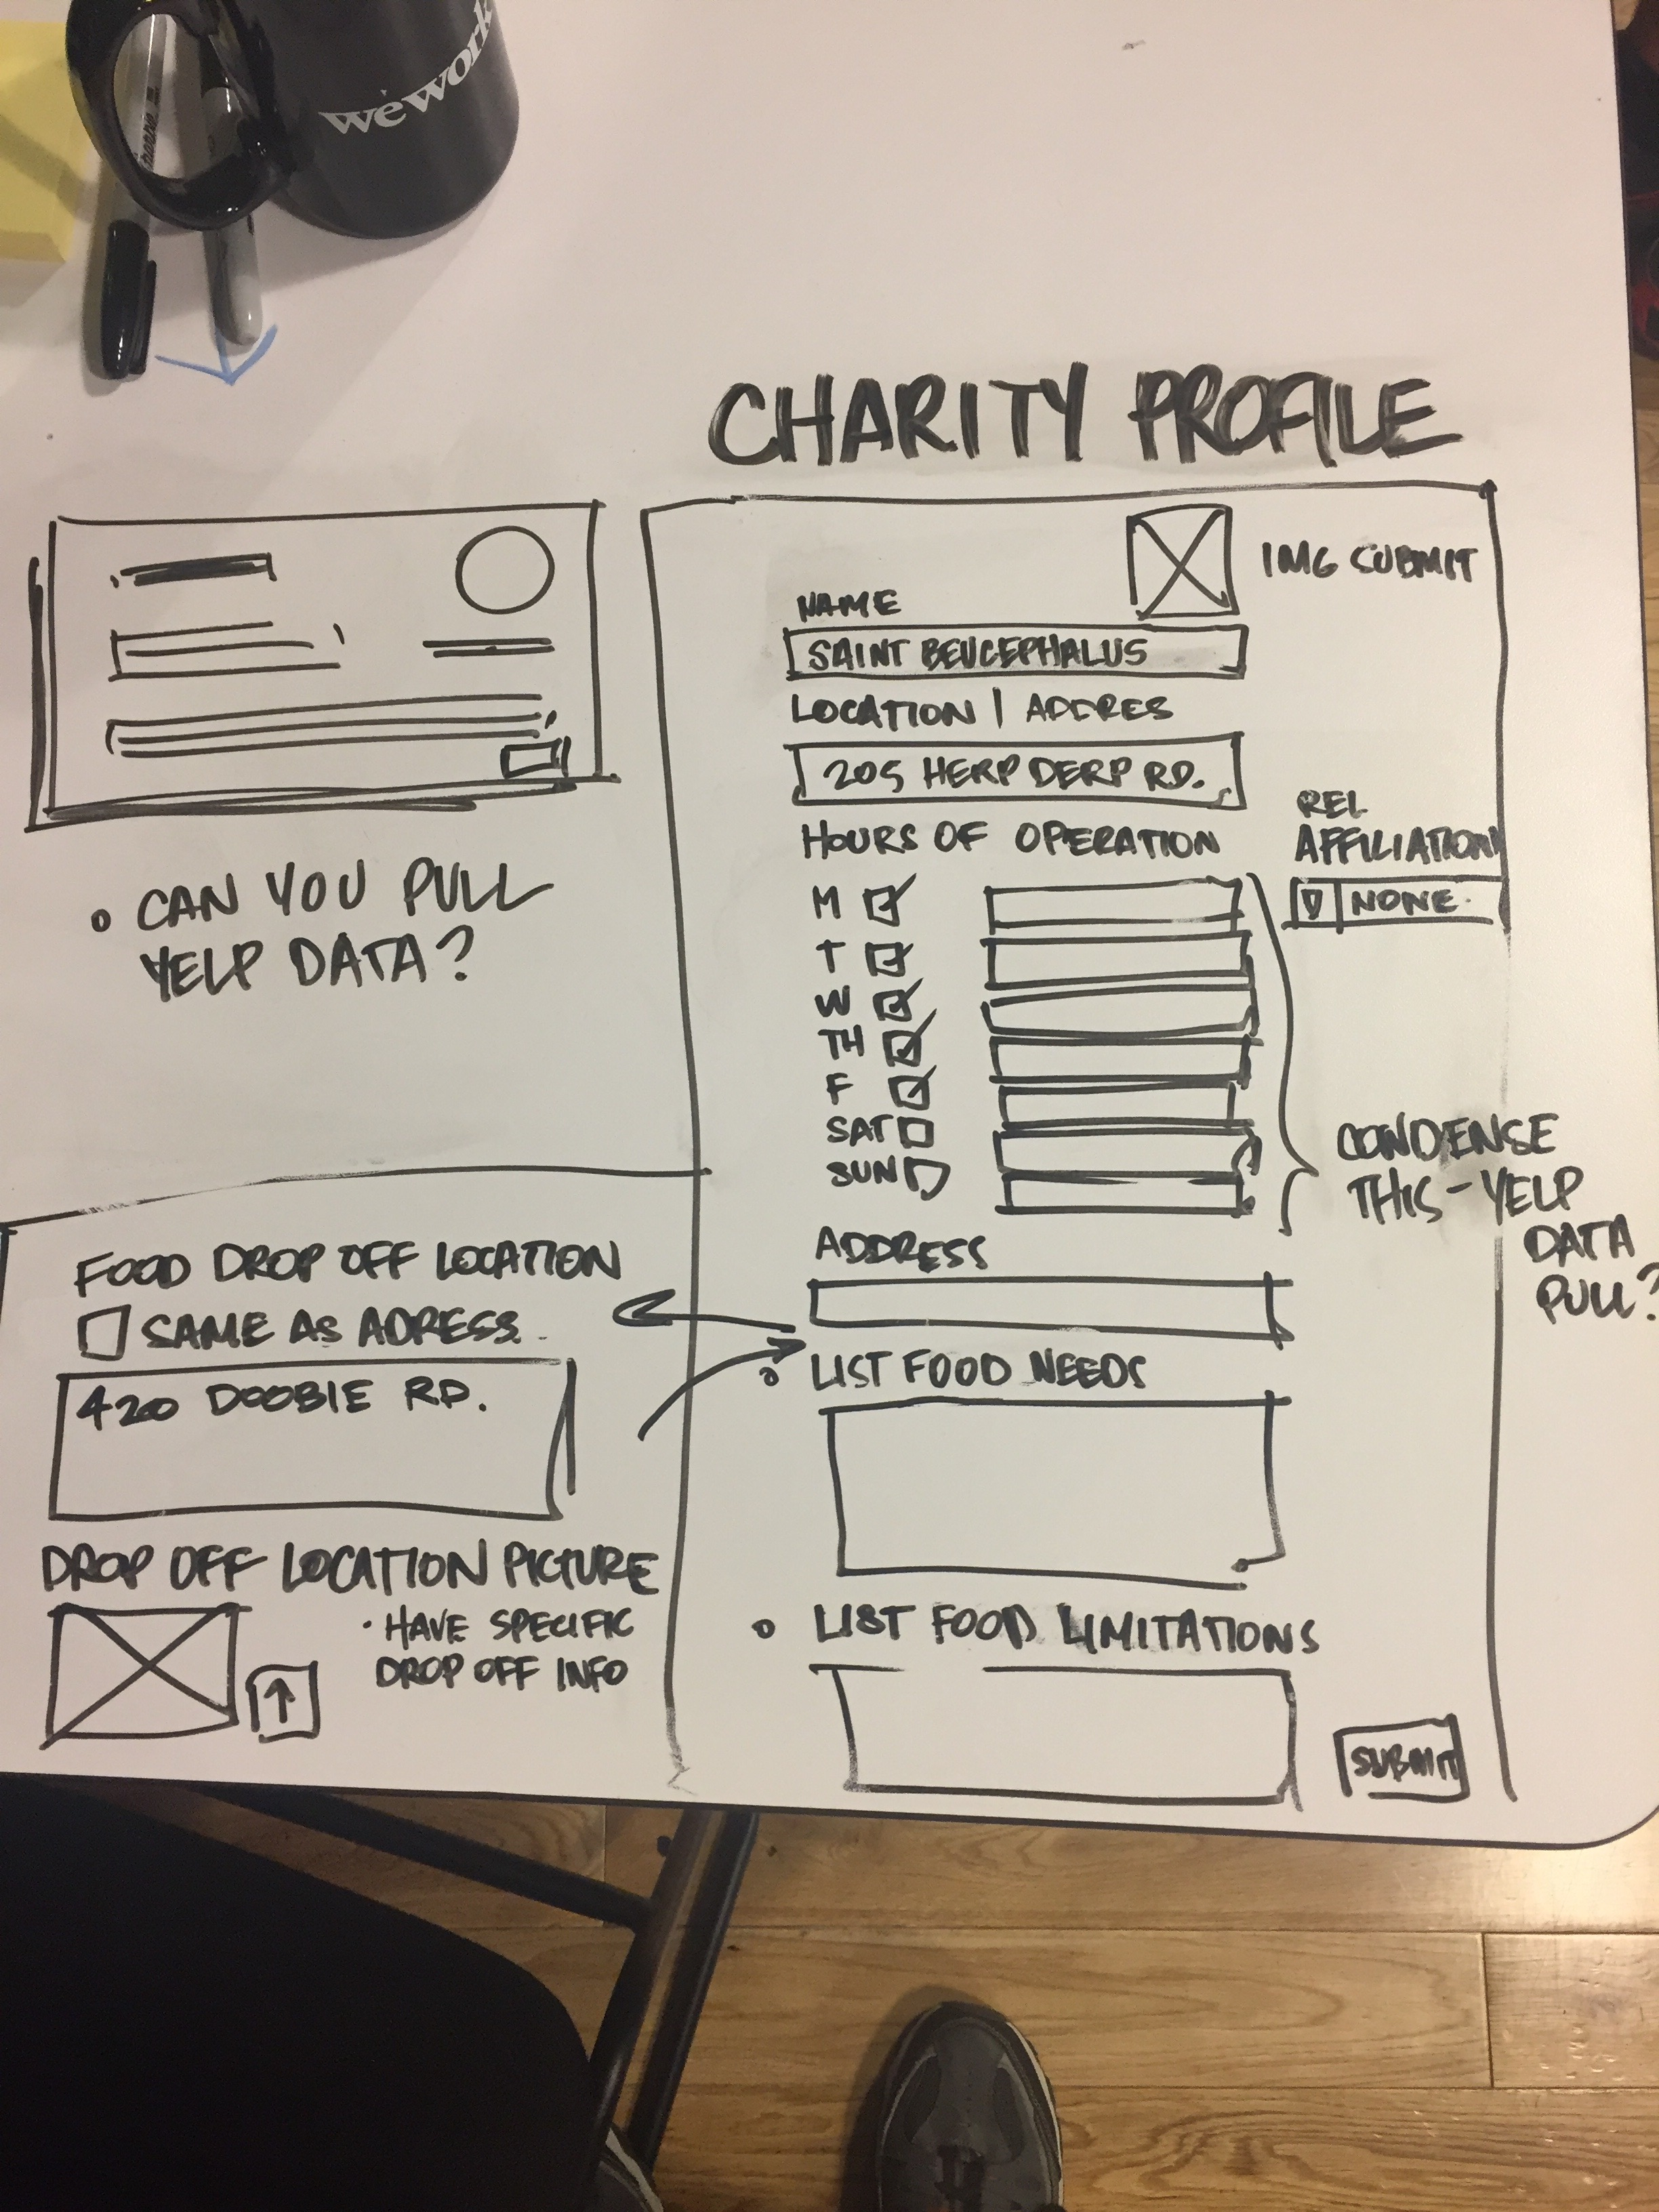 Charity Profile